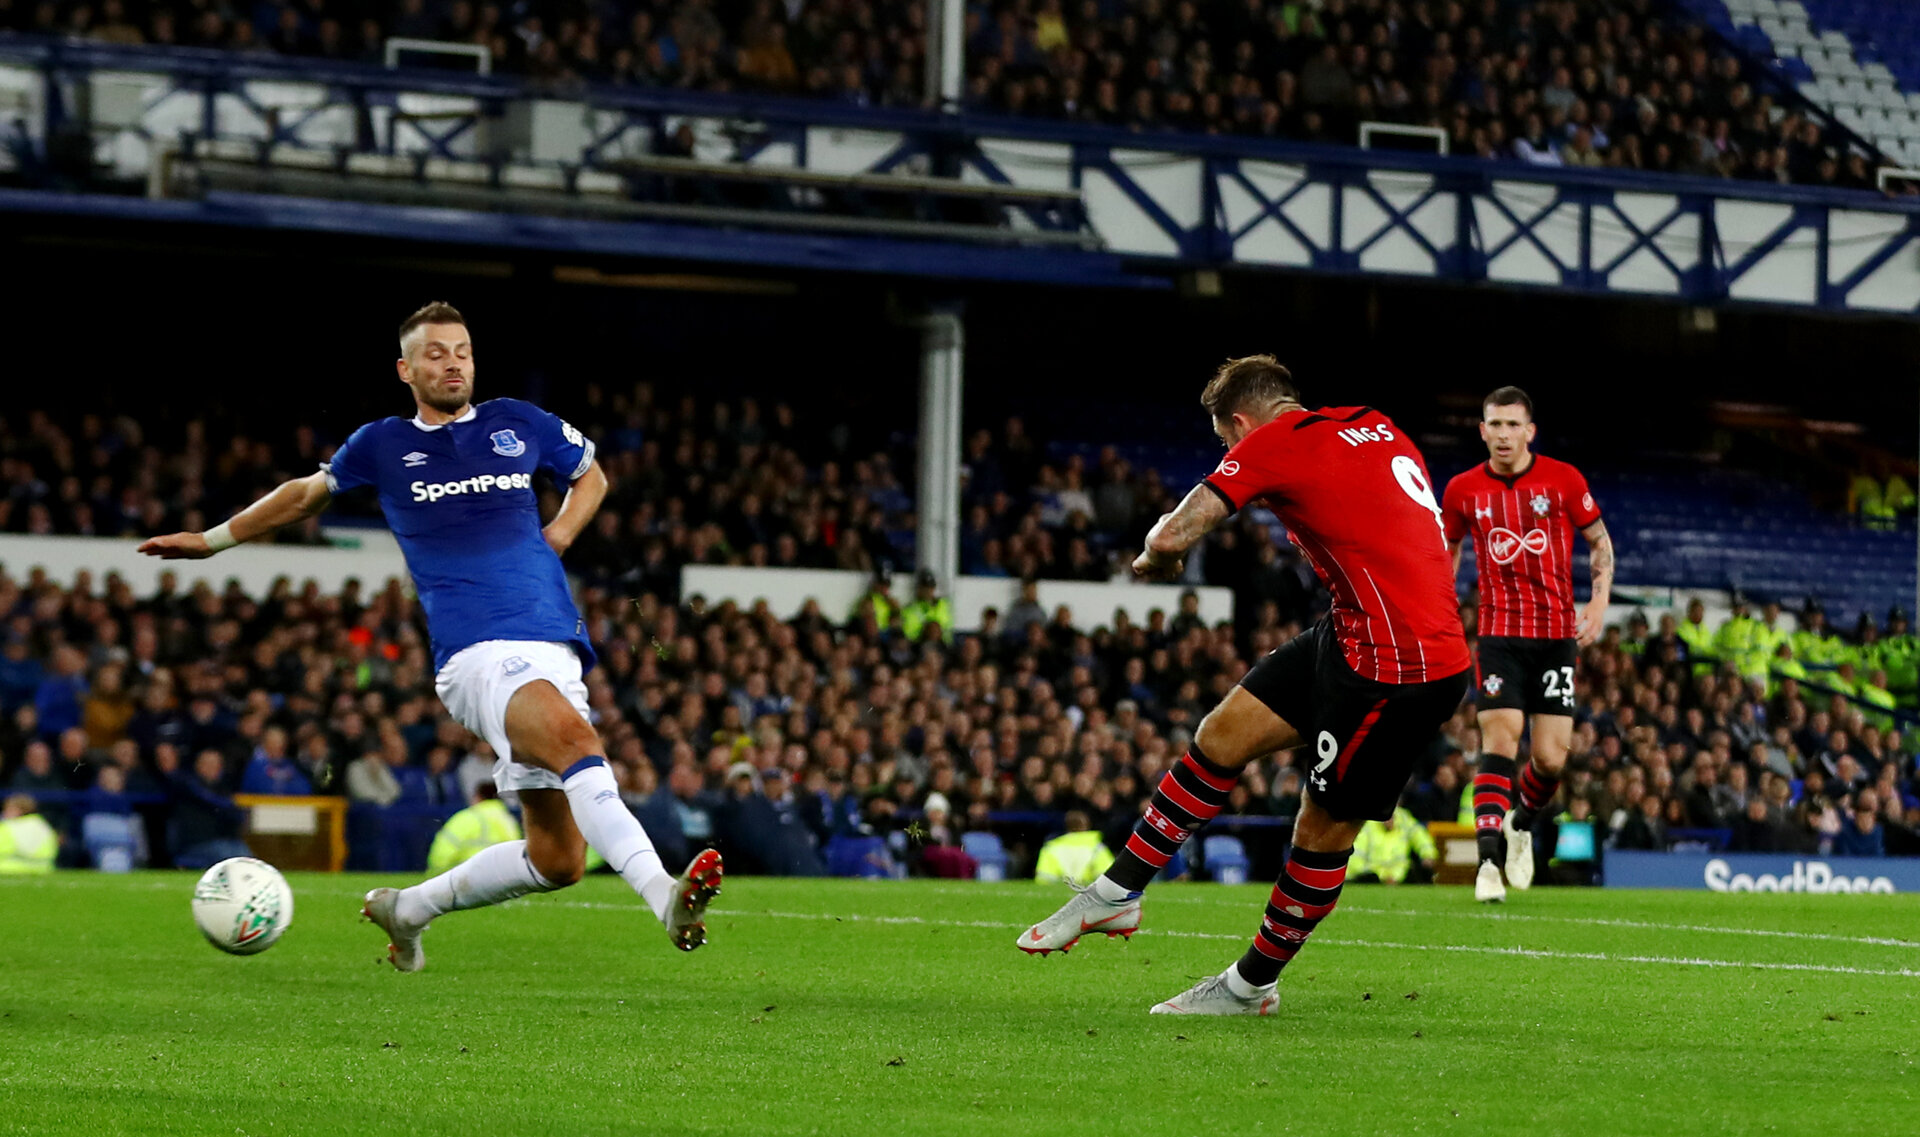 LIVERPOOL, ENGLAND - OCTOBER 02: Danny Ings of Southampton puts his side 1-0 up during the Carabao Cup Third Round match between Everton and Southampton at Goodison Park on October 2nd, 2018 in Liverpool, England. (Photo by Matt Watson/Southampton FC via Getty Images)